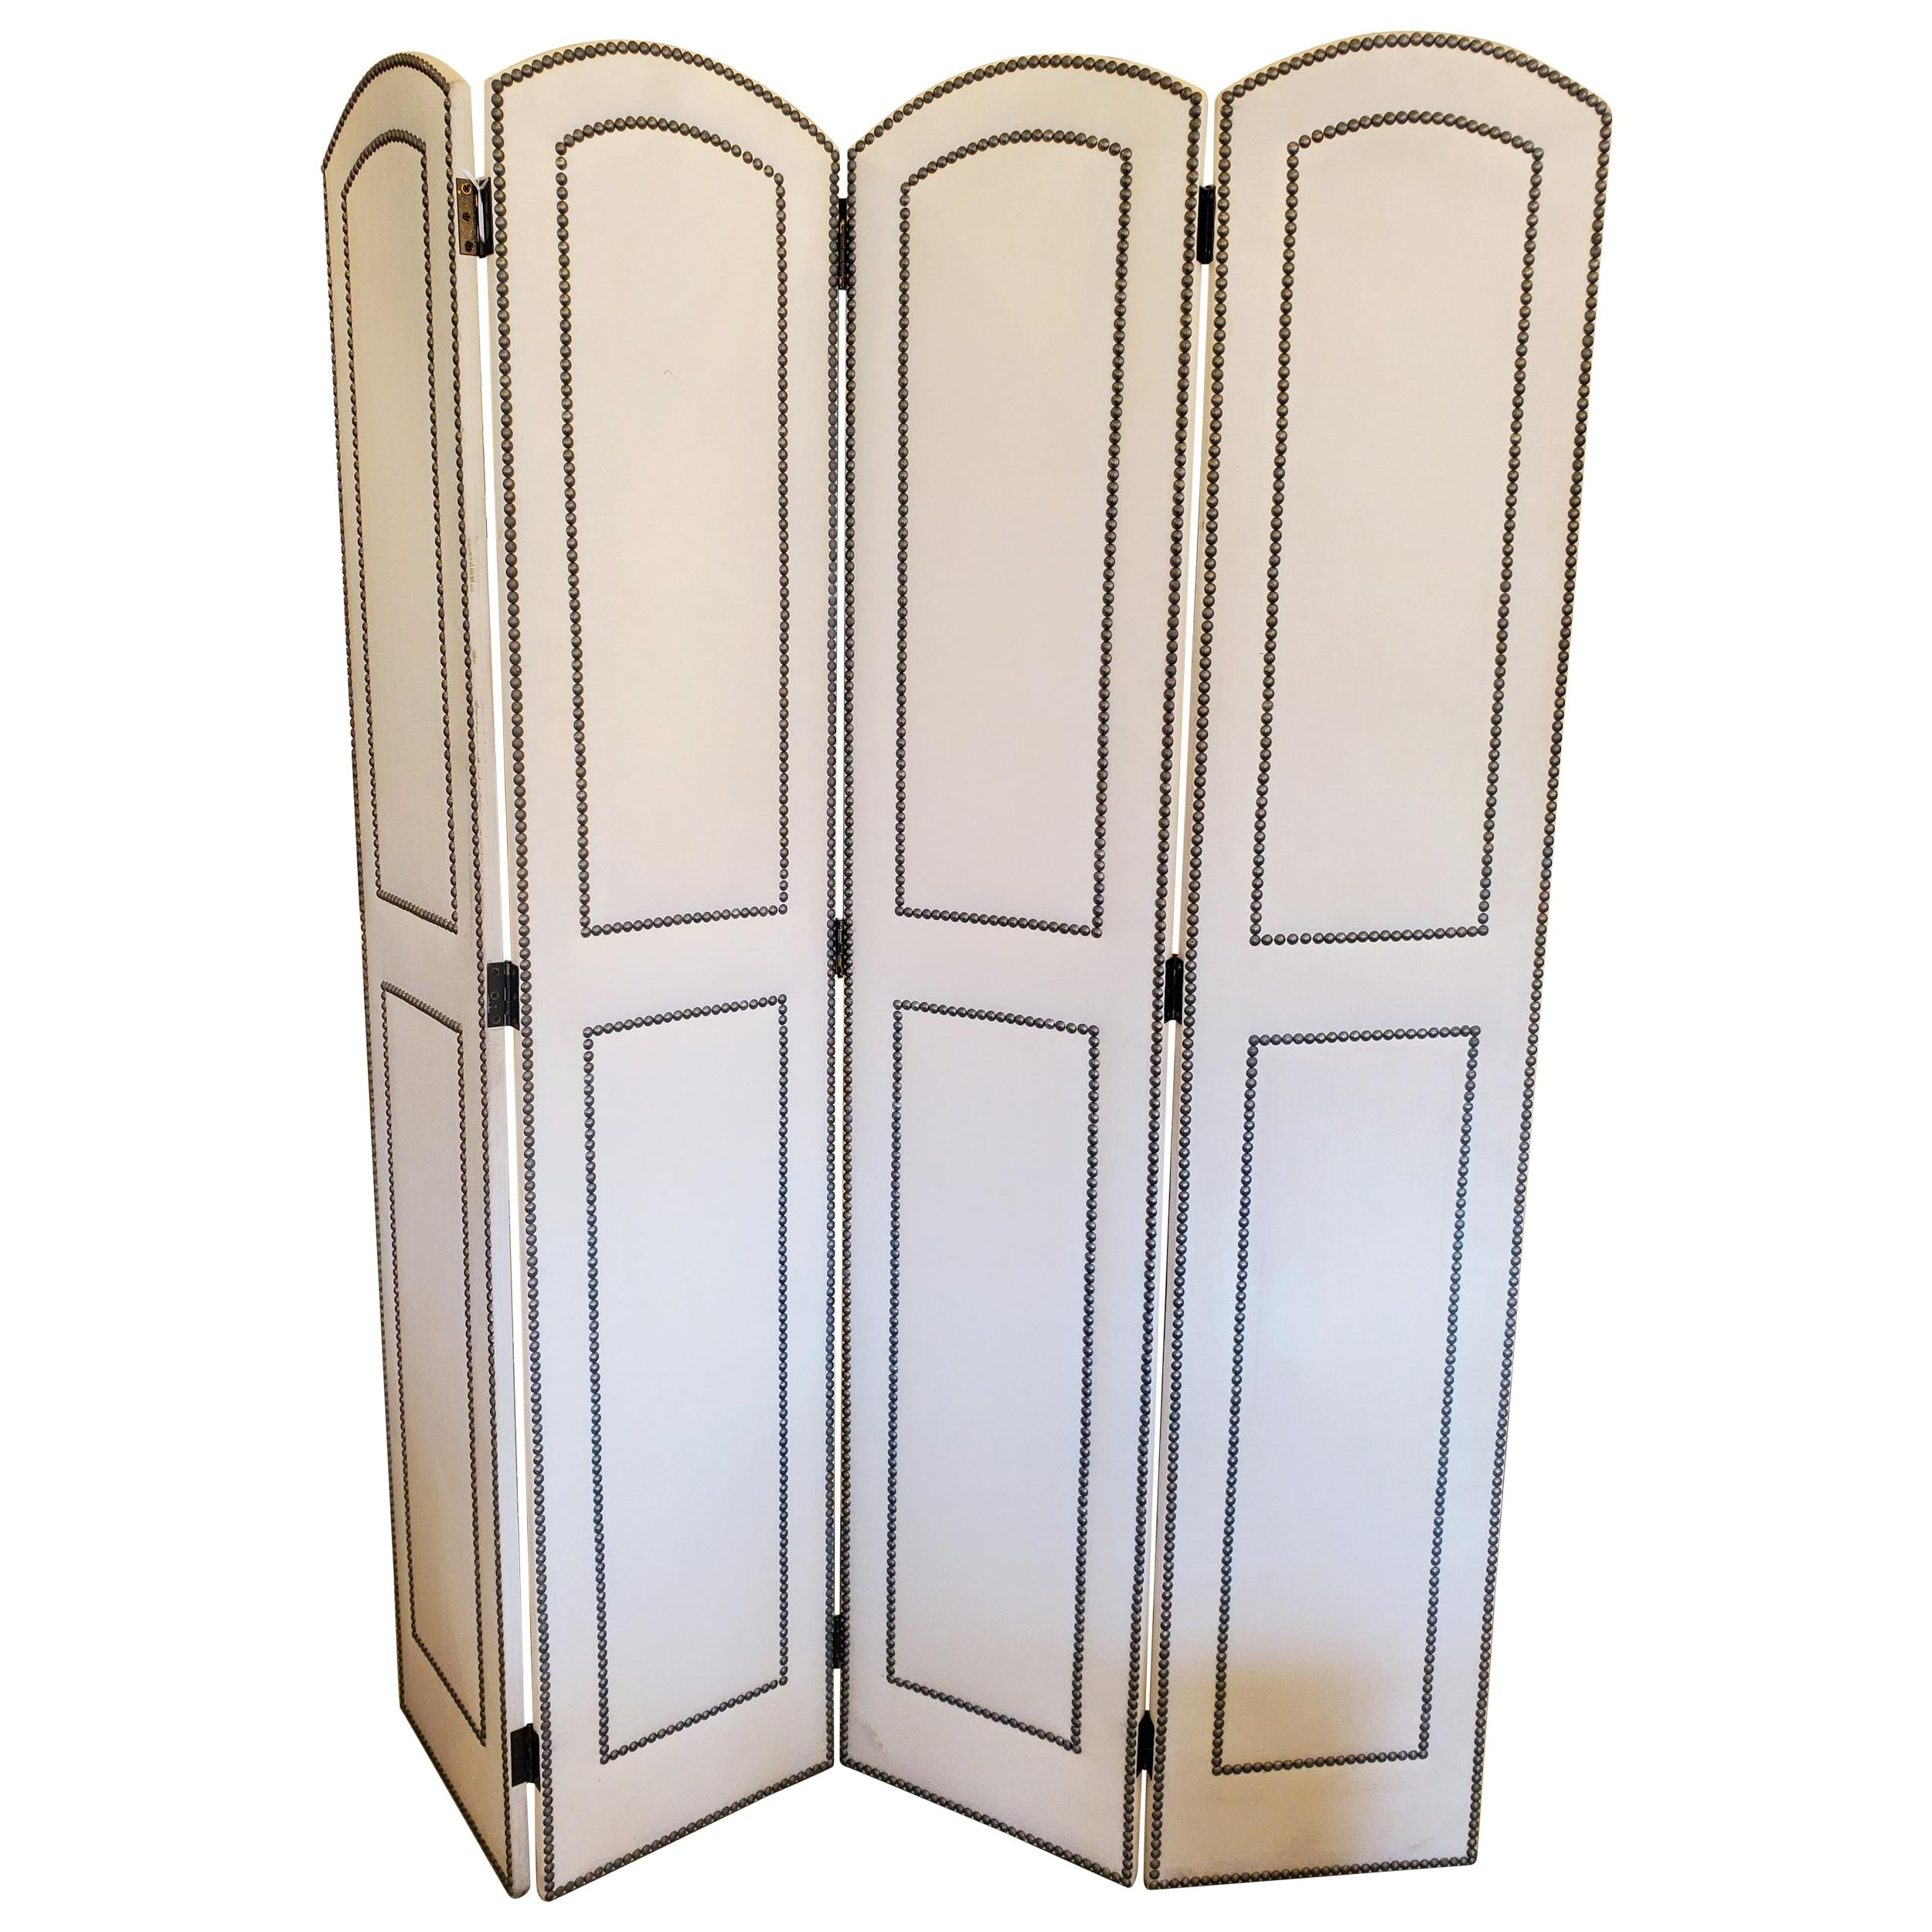 Luxurious Upholstered 4 Panel Screen with Nailheads